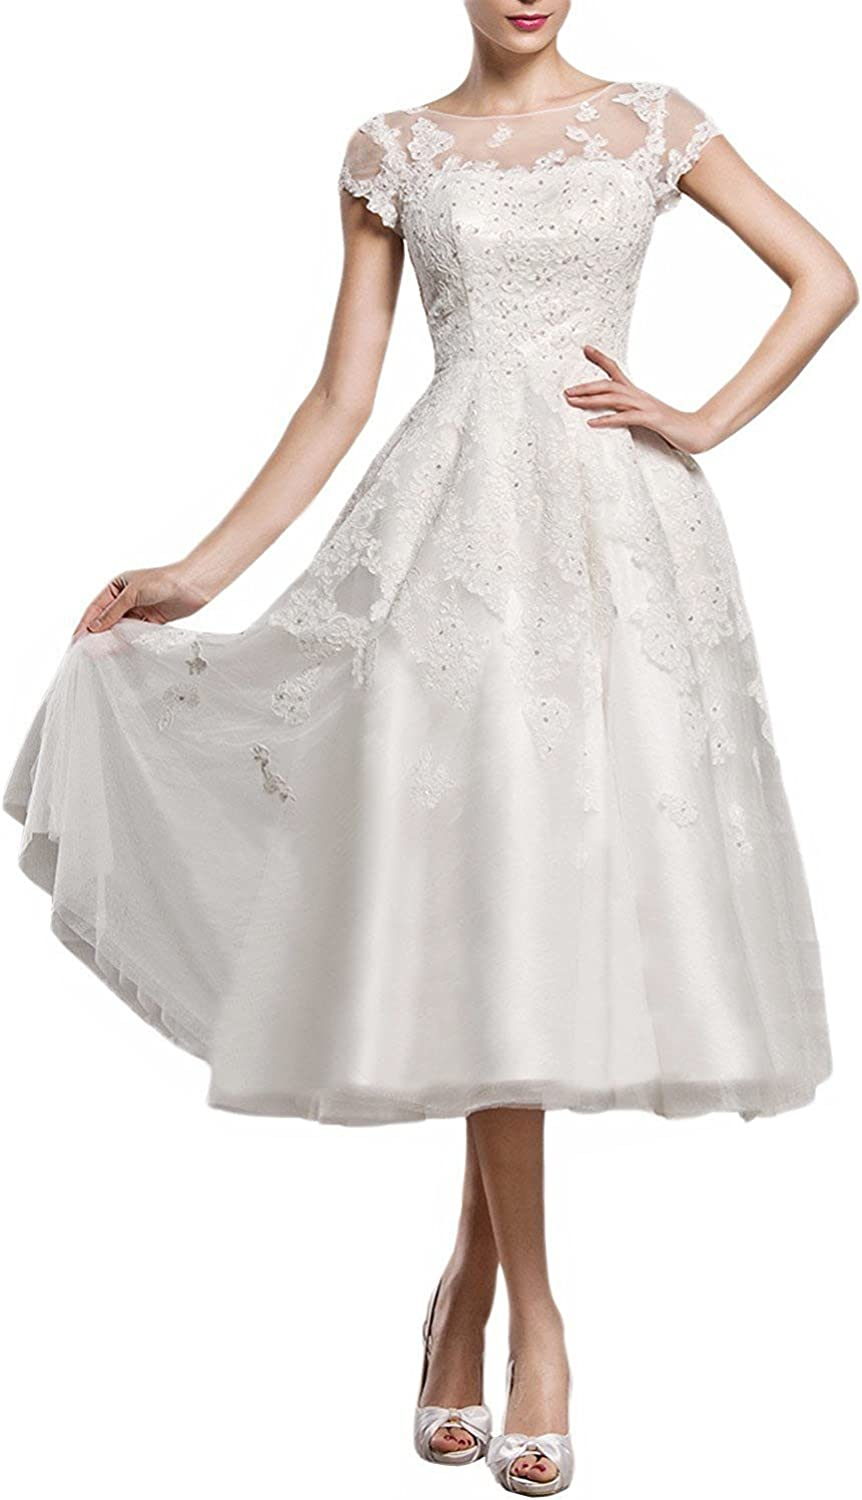 JQLD Womens Tea Length Lace Tulle Wedding Dress Cap Sleeve A Line Bridal Gown